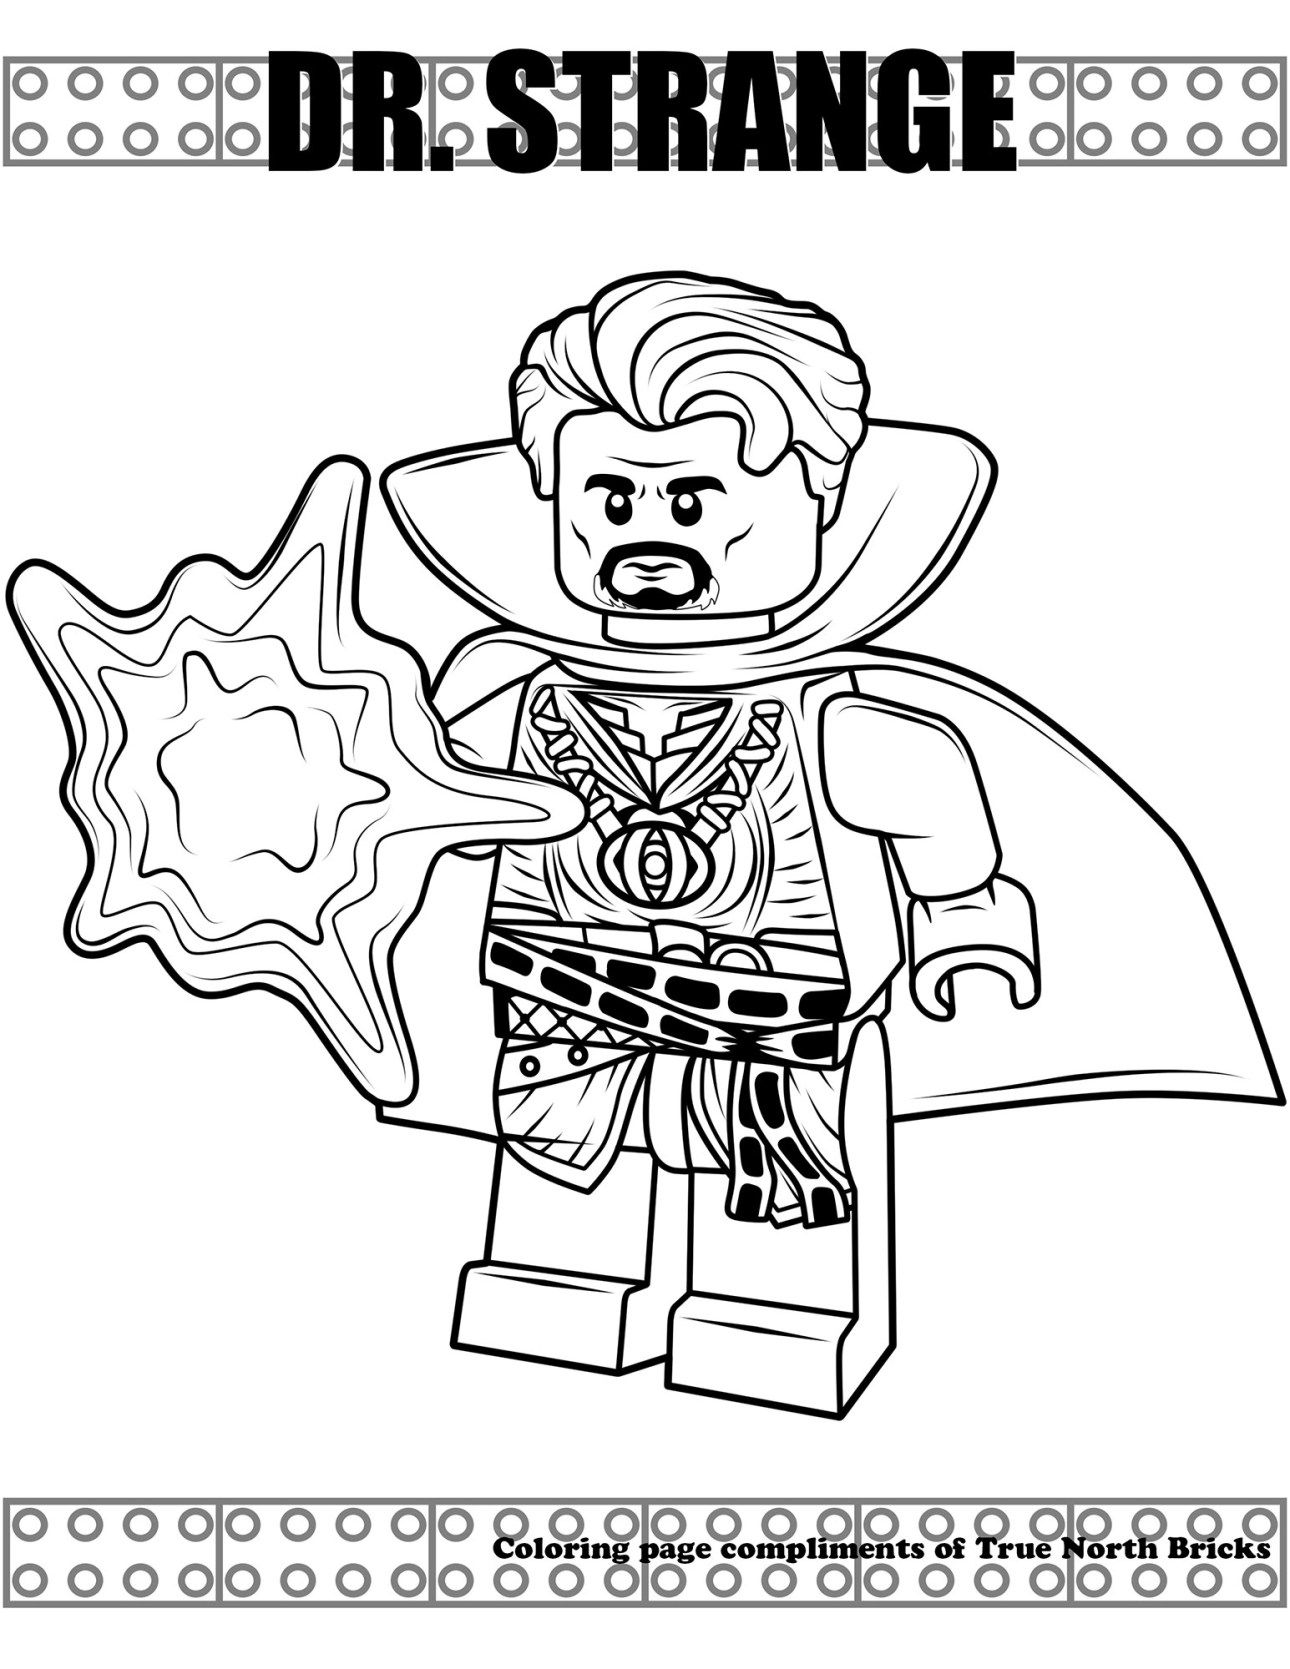 Super Heroes Reviews True North Bricks In 2020 Avengers Coloring Pages Avengers Coloring Lego Coloring Pages